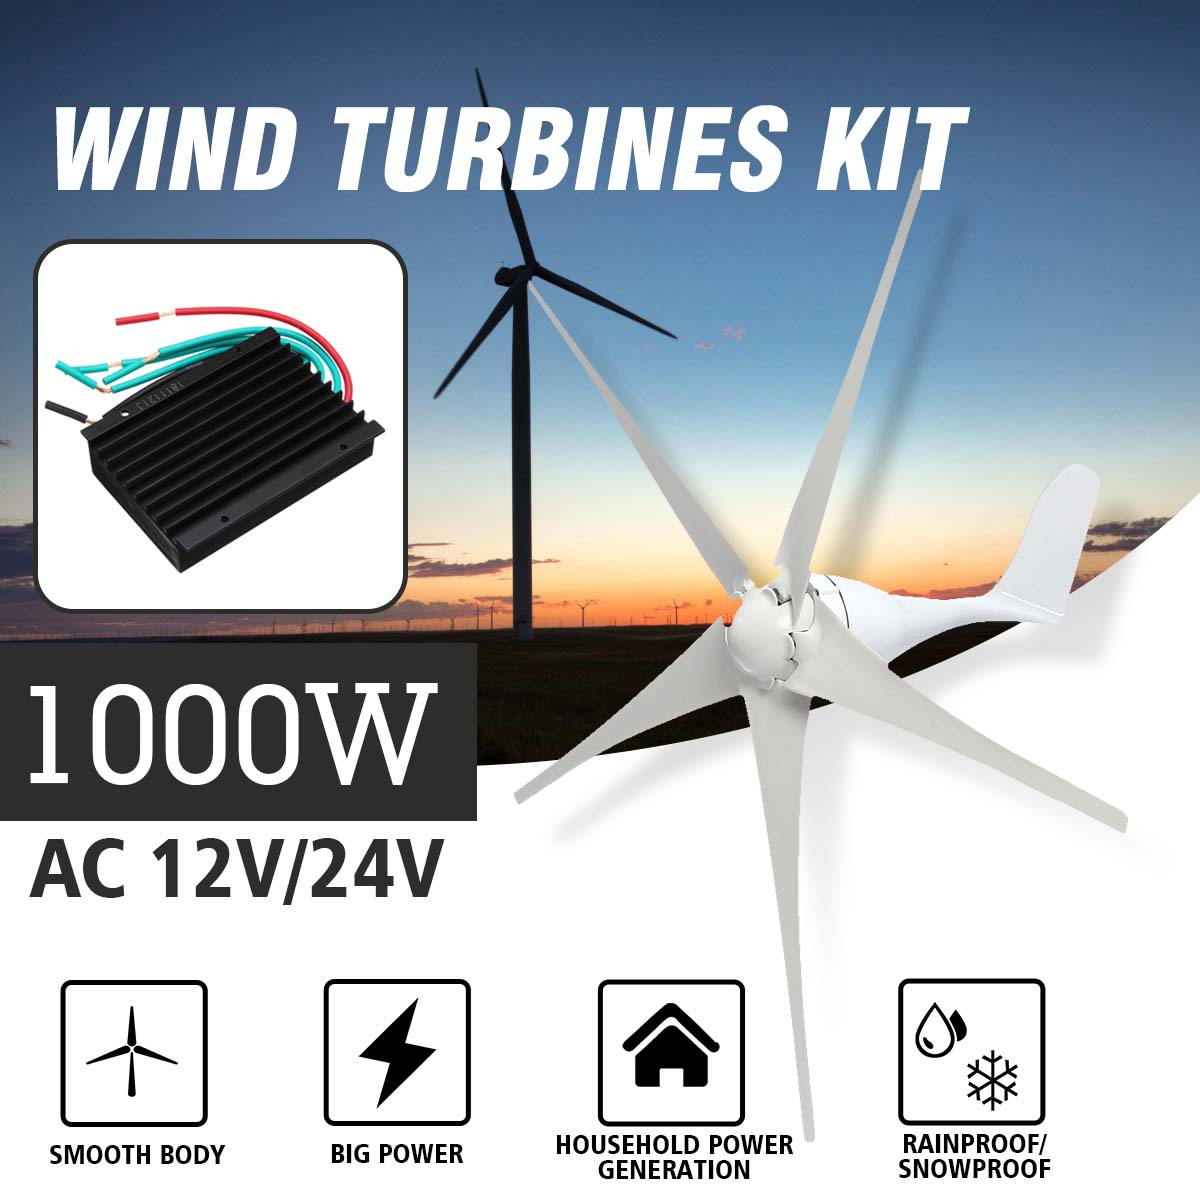 1000W Wind Generator AC 12V/24V 5 Blades Wind Power Magnet Turbines With Controller Vertical Axis For Home Camping Streetlight